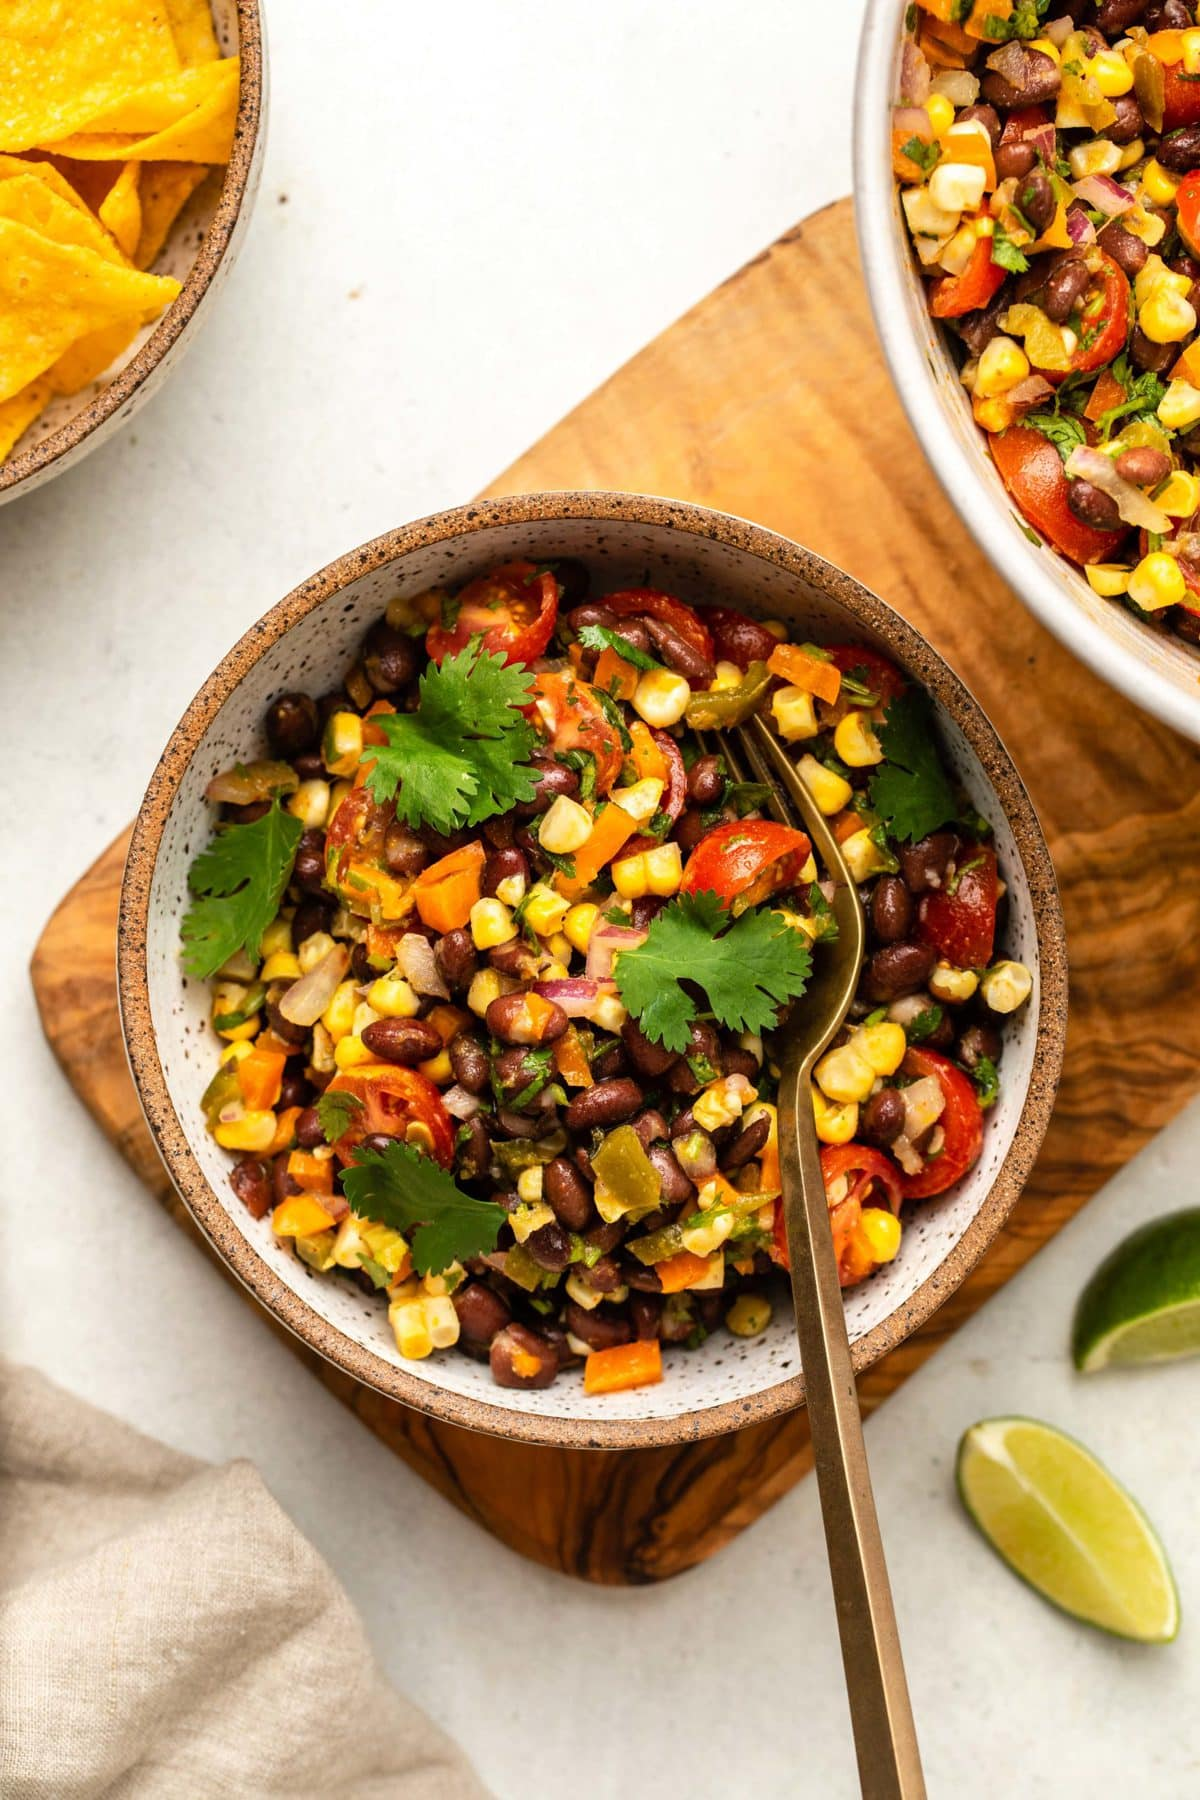 white bowl of tex mex black bean salad topped with fresh cilantro. A gold fork is in the bowl, and the bowl rests on a wood cutting board. Lime wedges and a bowl of tortilla chips are off to the side.